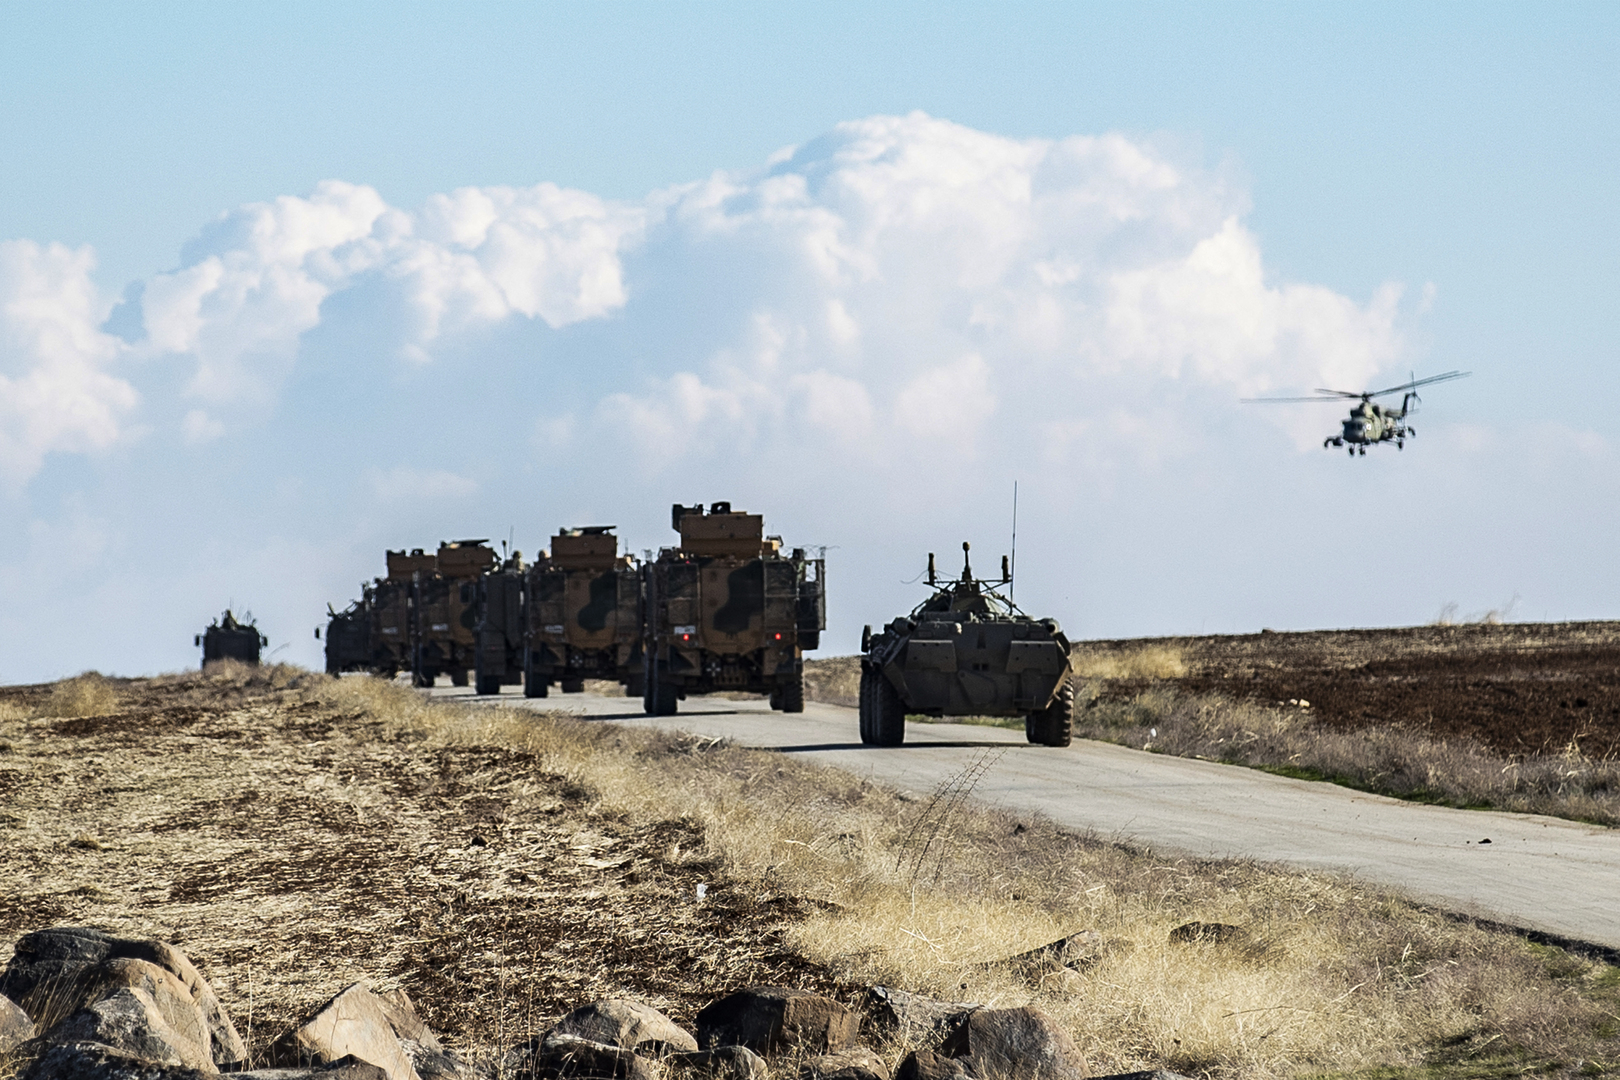 Joint exercises for the Russian and Turkish soldiers in Idlib, Syria